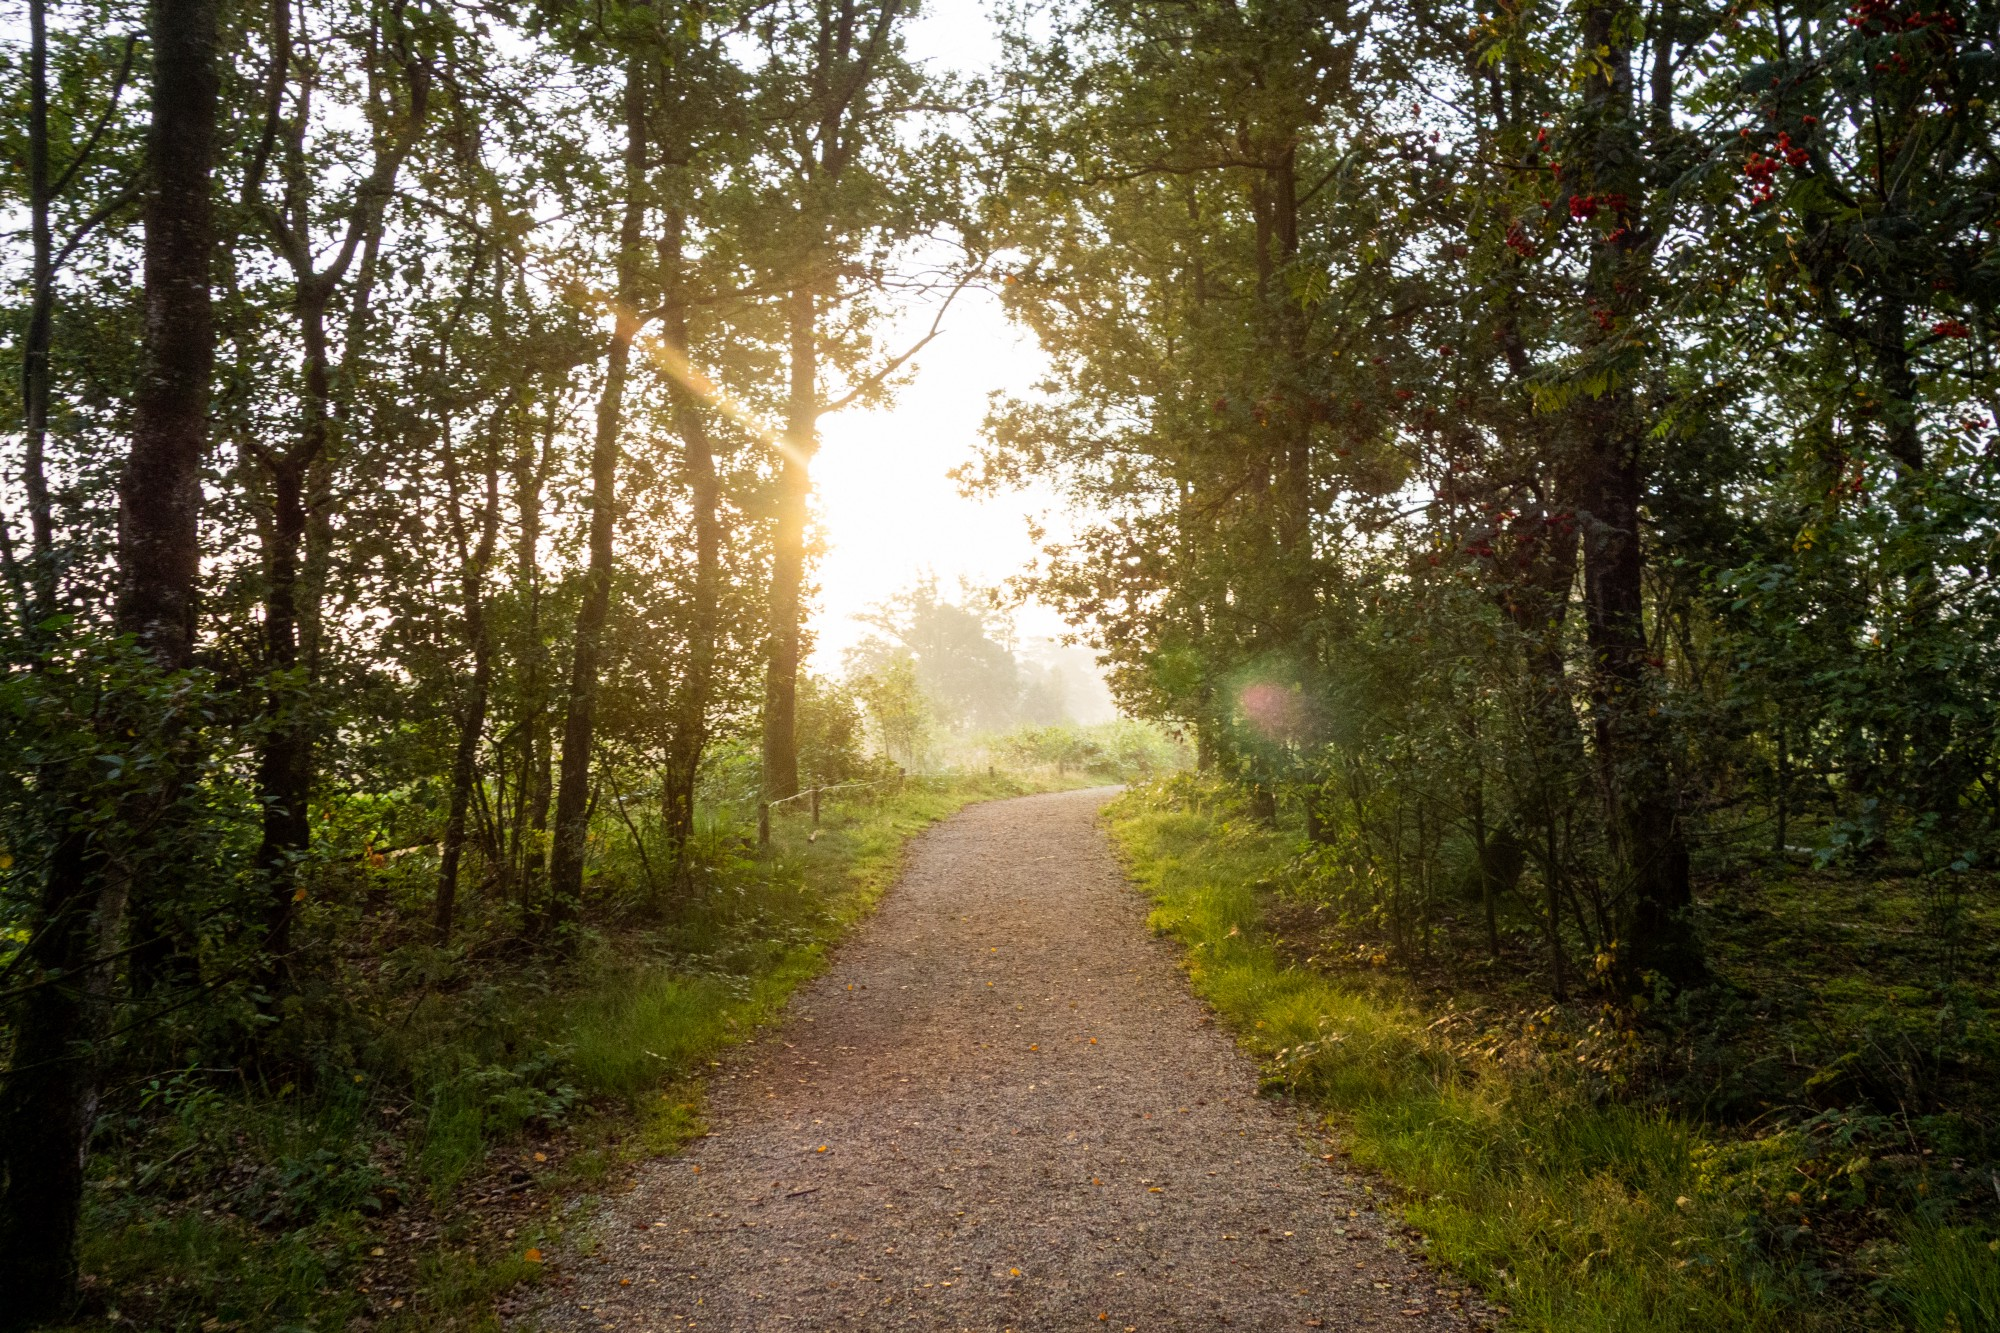 Narrow road lined with tall trees on both sides, leading to open area of sunshine that's sure to make you smile.